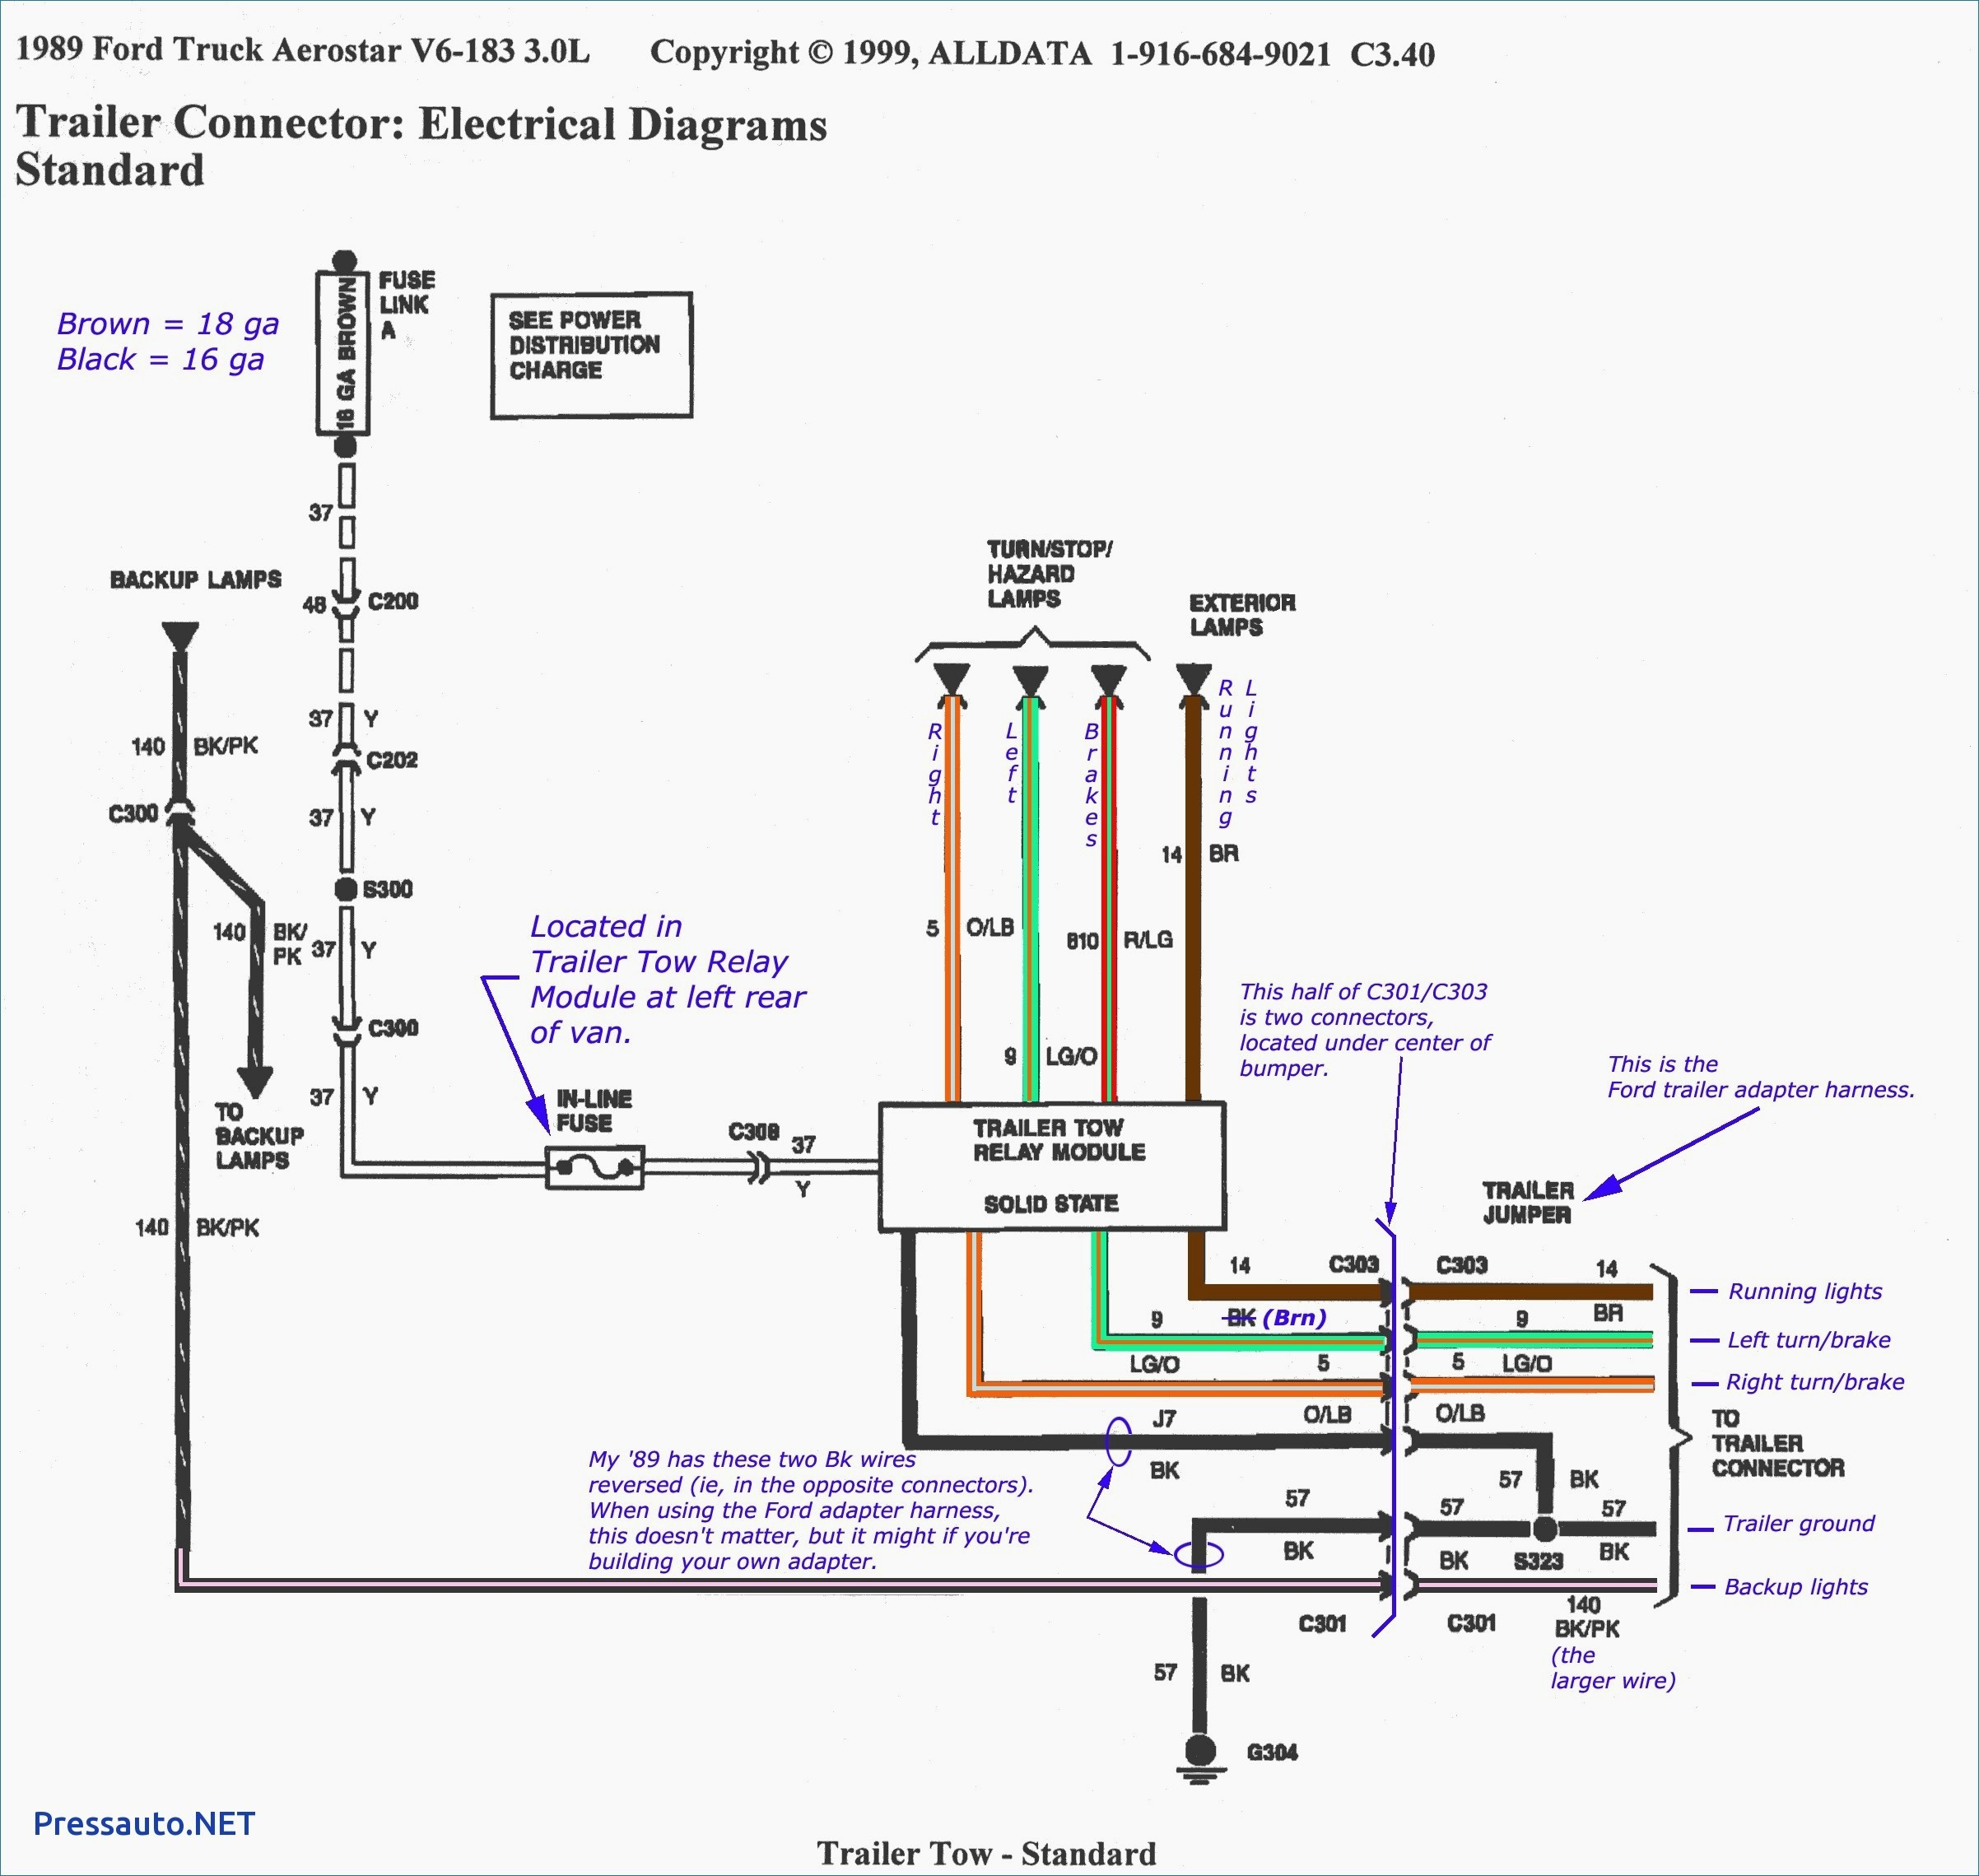 Jayco Camper Wiring Diagram Free Download Wiring Diagram Schematic - Jayco Camper Trailer Wiring Diagram